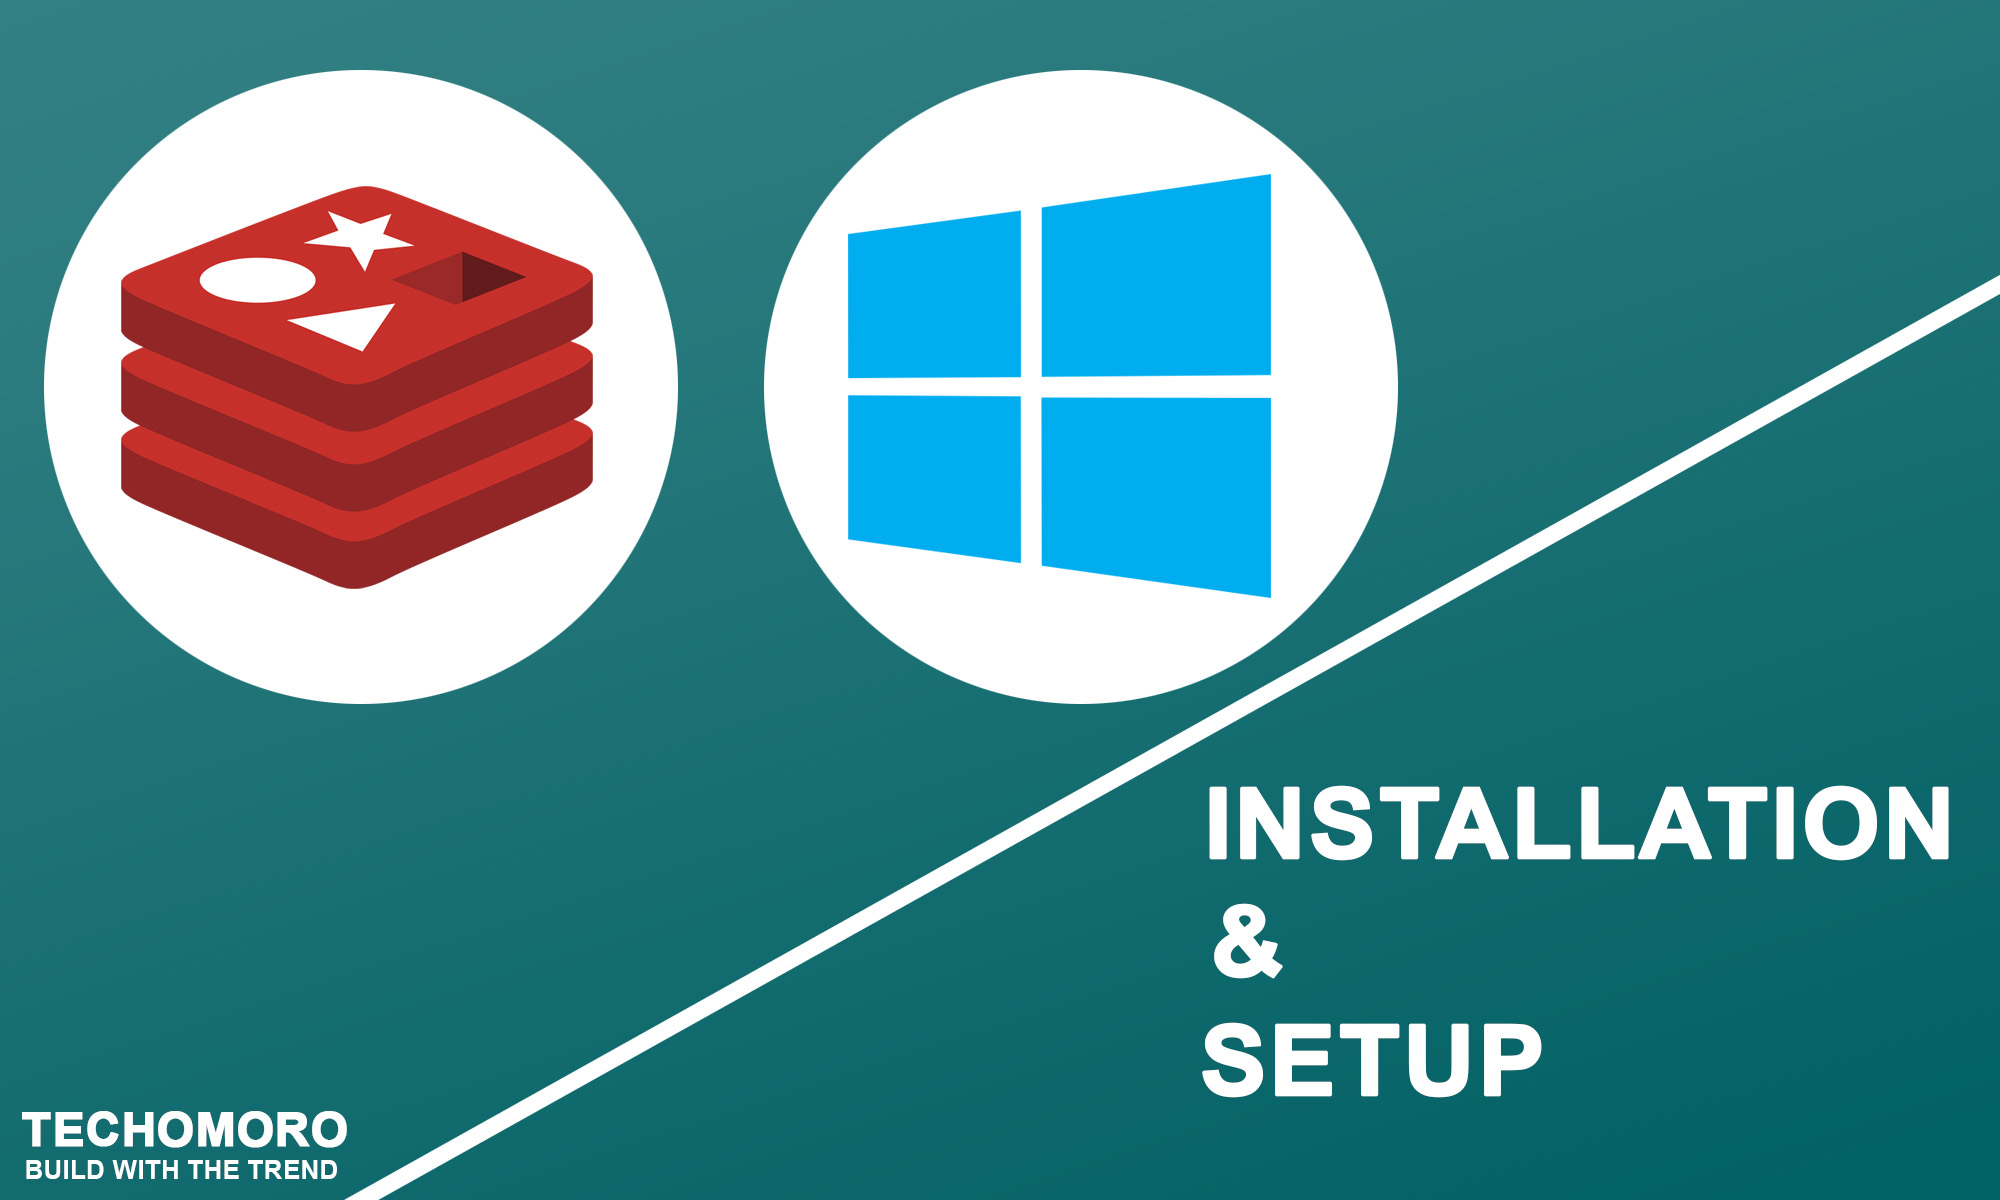 How to Run Redis on Windows 10